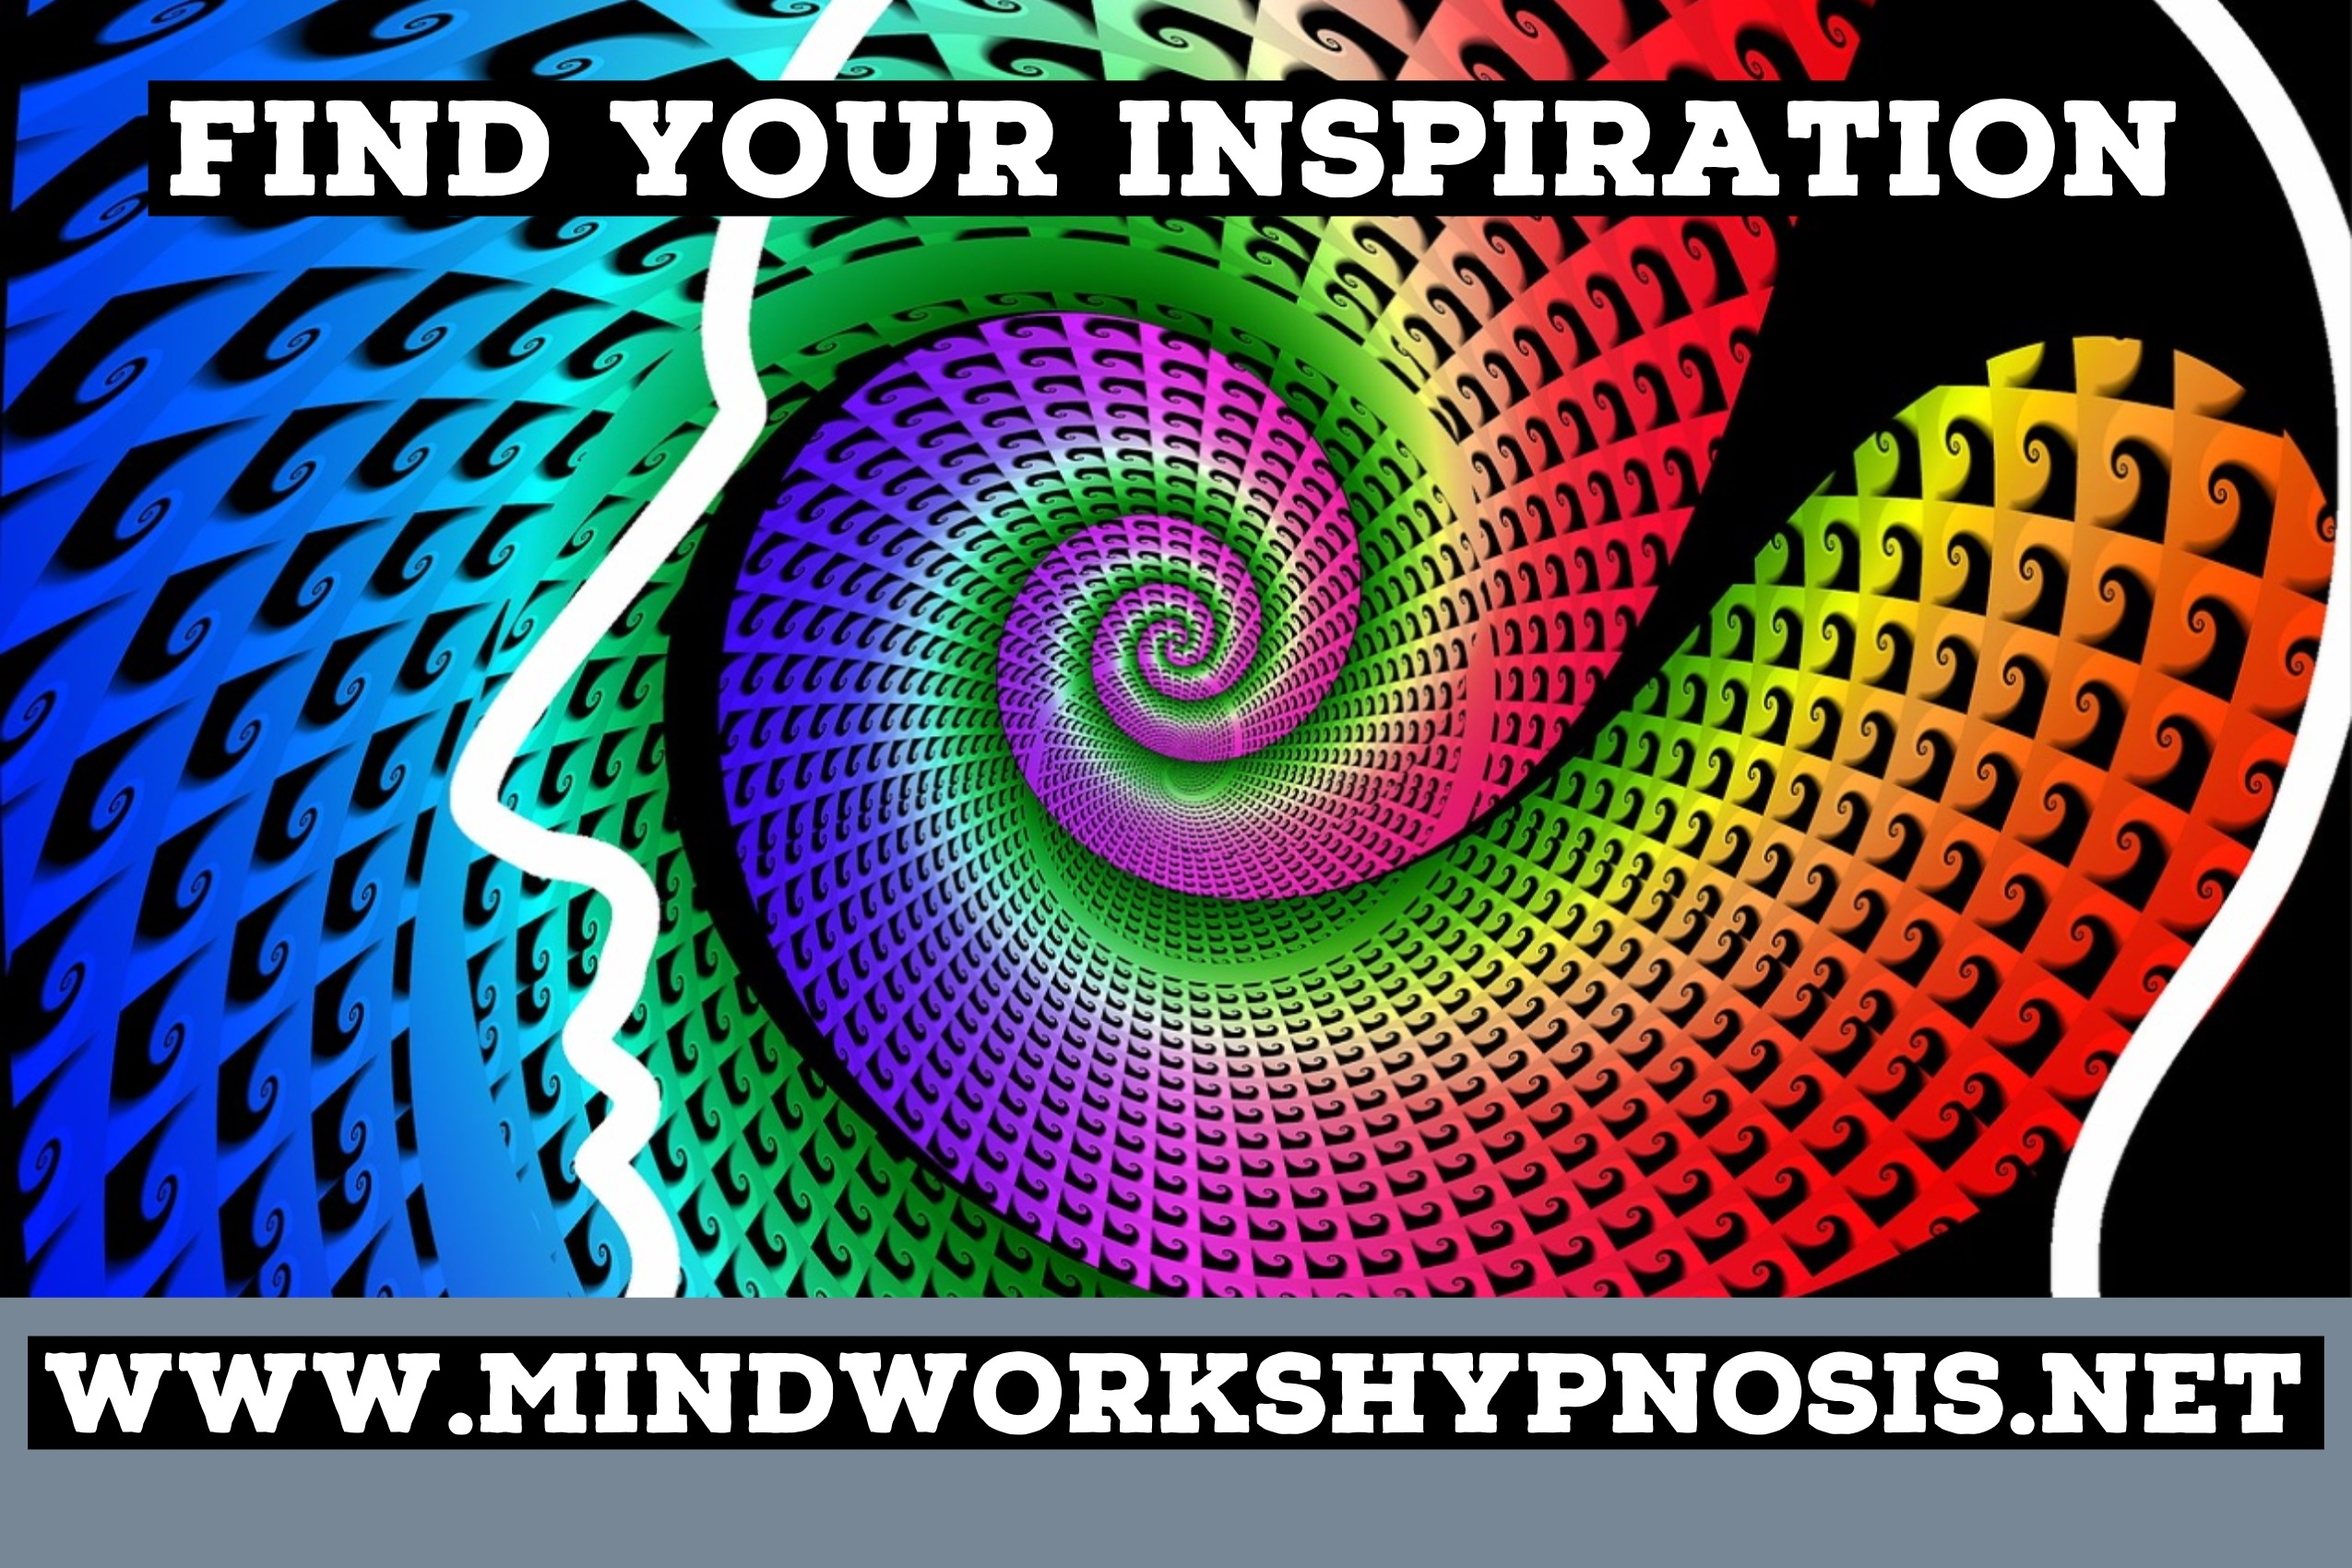 Find Your Inspiration, Creativity and Ideas. hypnosis opens the door.